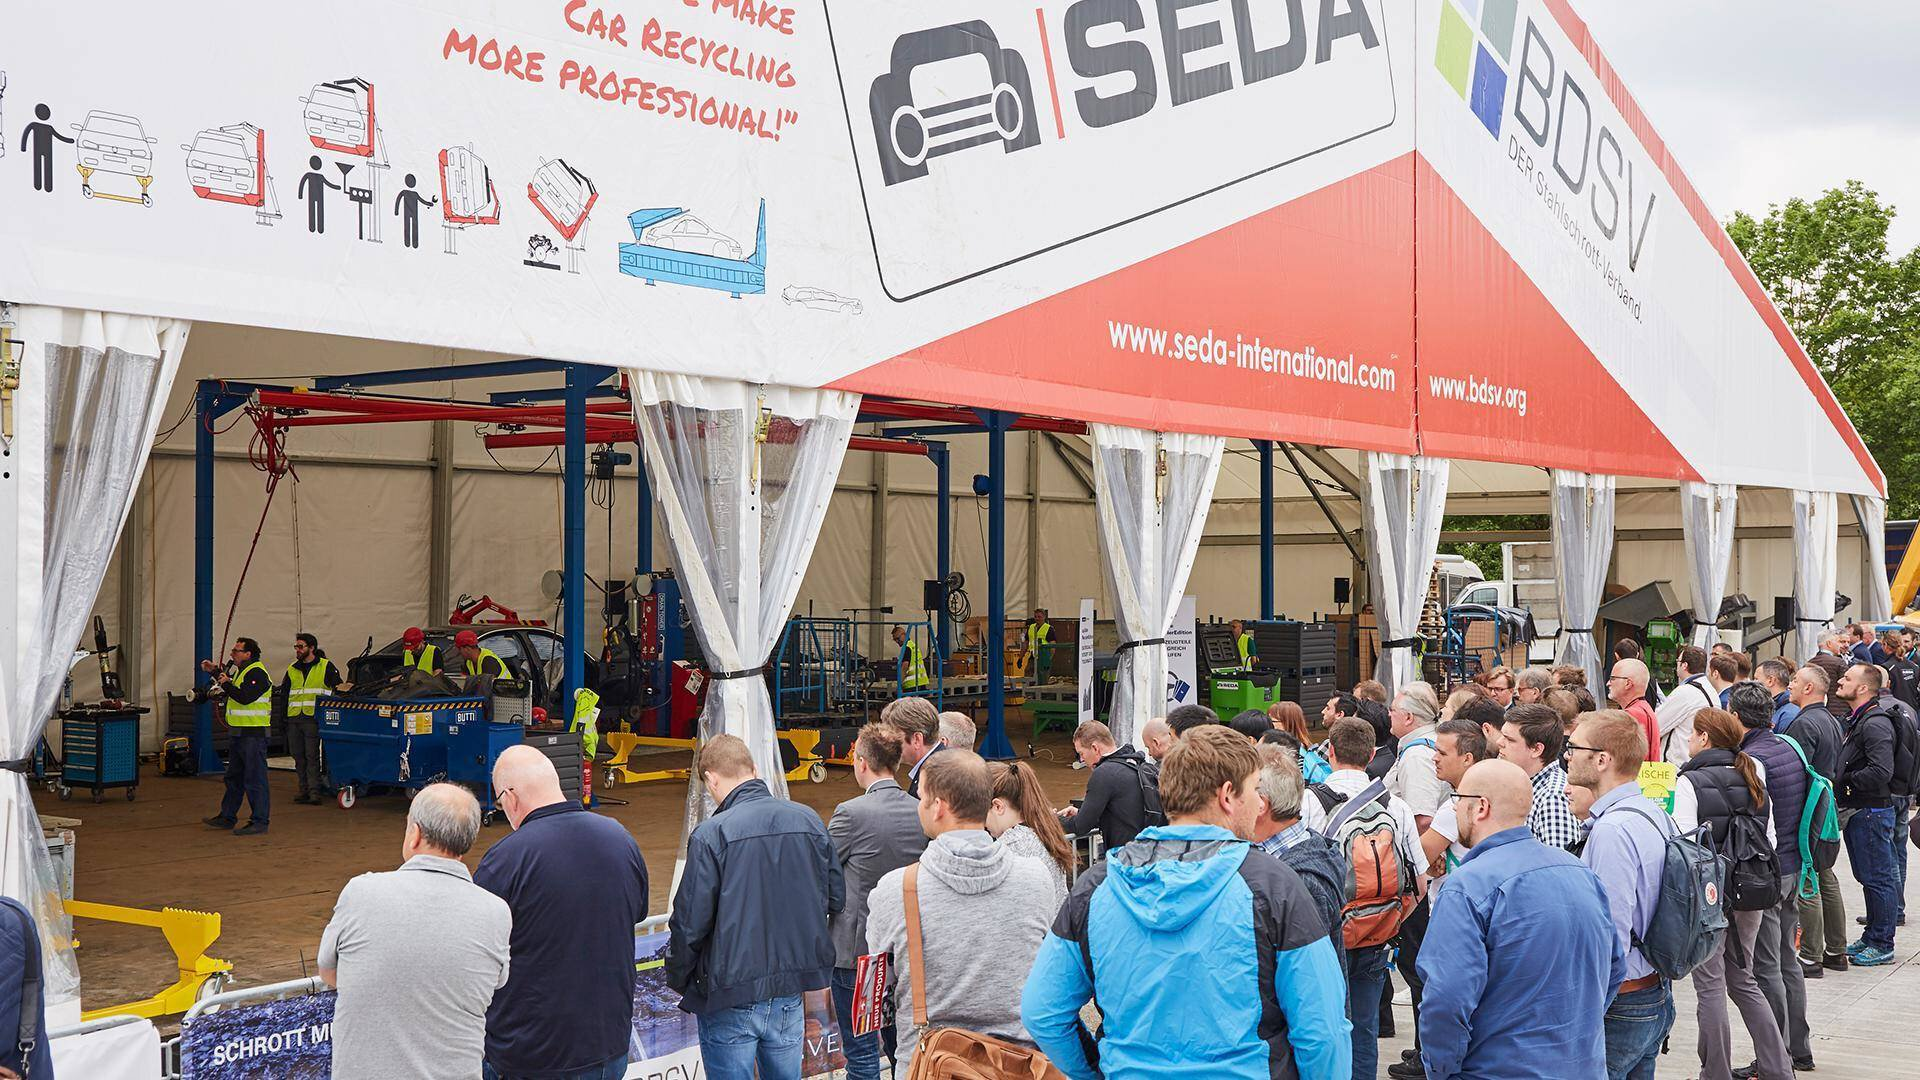 Gallery image 0 - SEDA-Umwelttechnik GmbH and BDSV (federal union of German steel recycling and waste management companies) presented a car recycling live demonstration at the IFAT 2018 show in Munich/Germany.